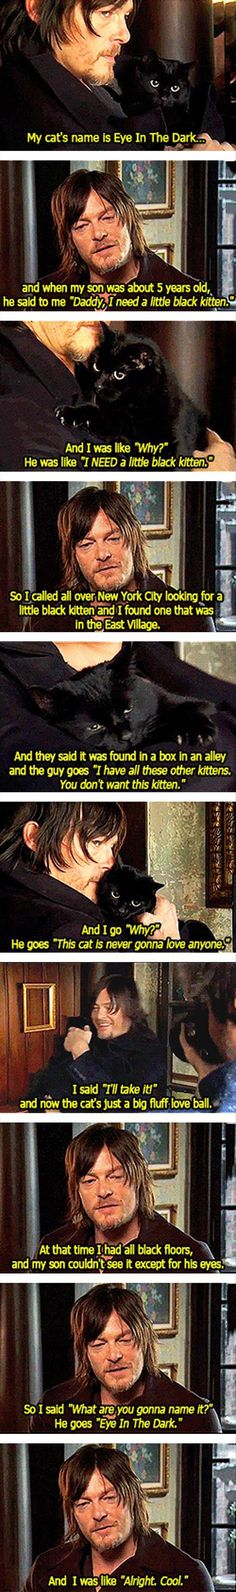 Norman Reedus is pretty awesome :D This is so great!